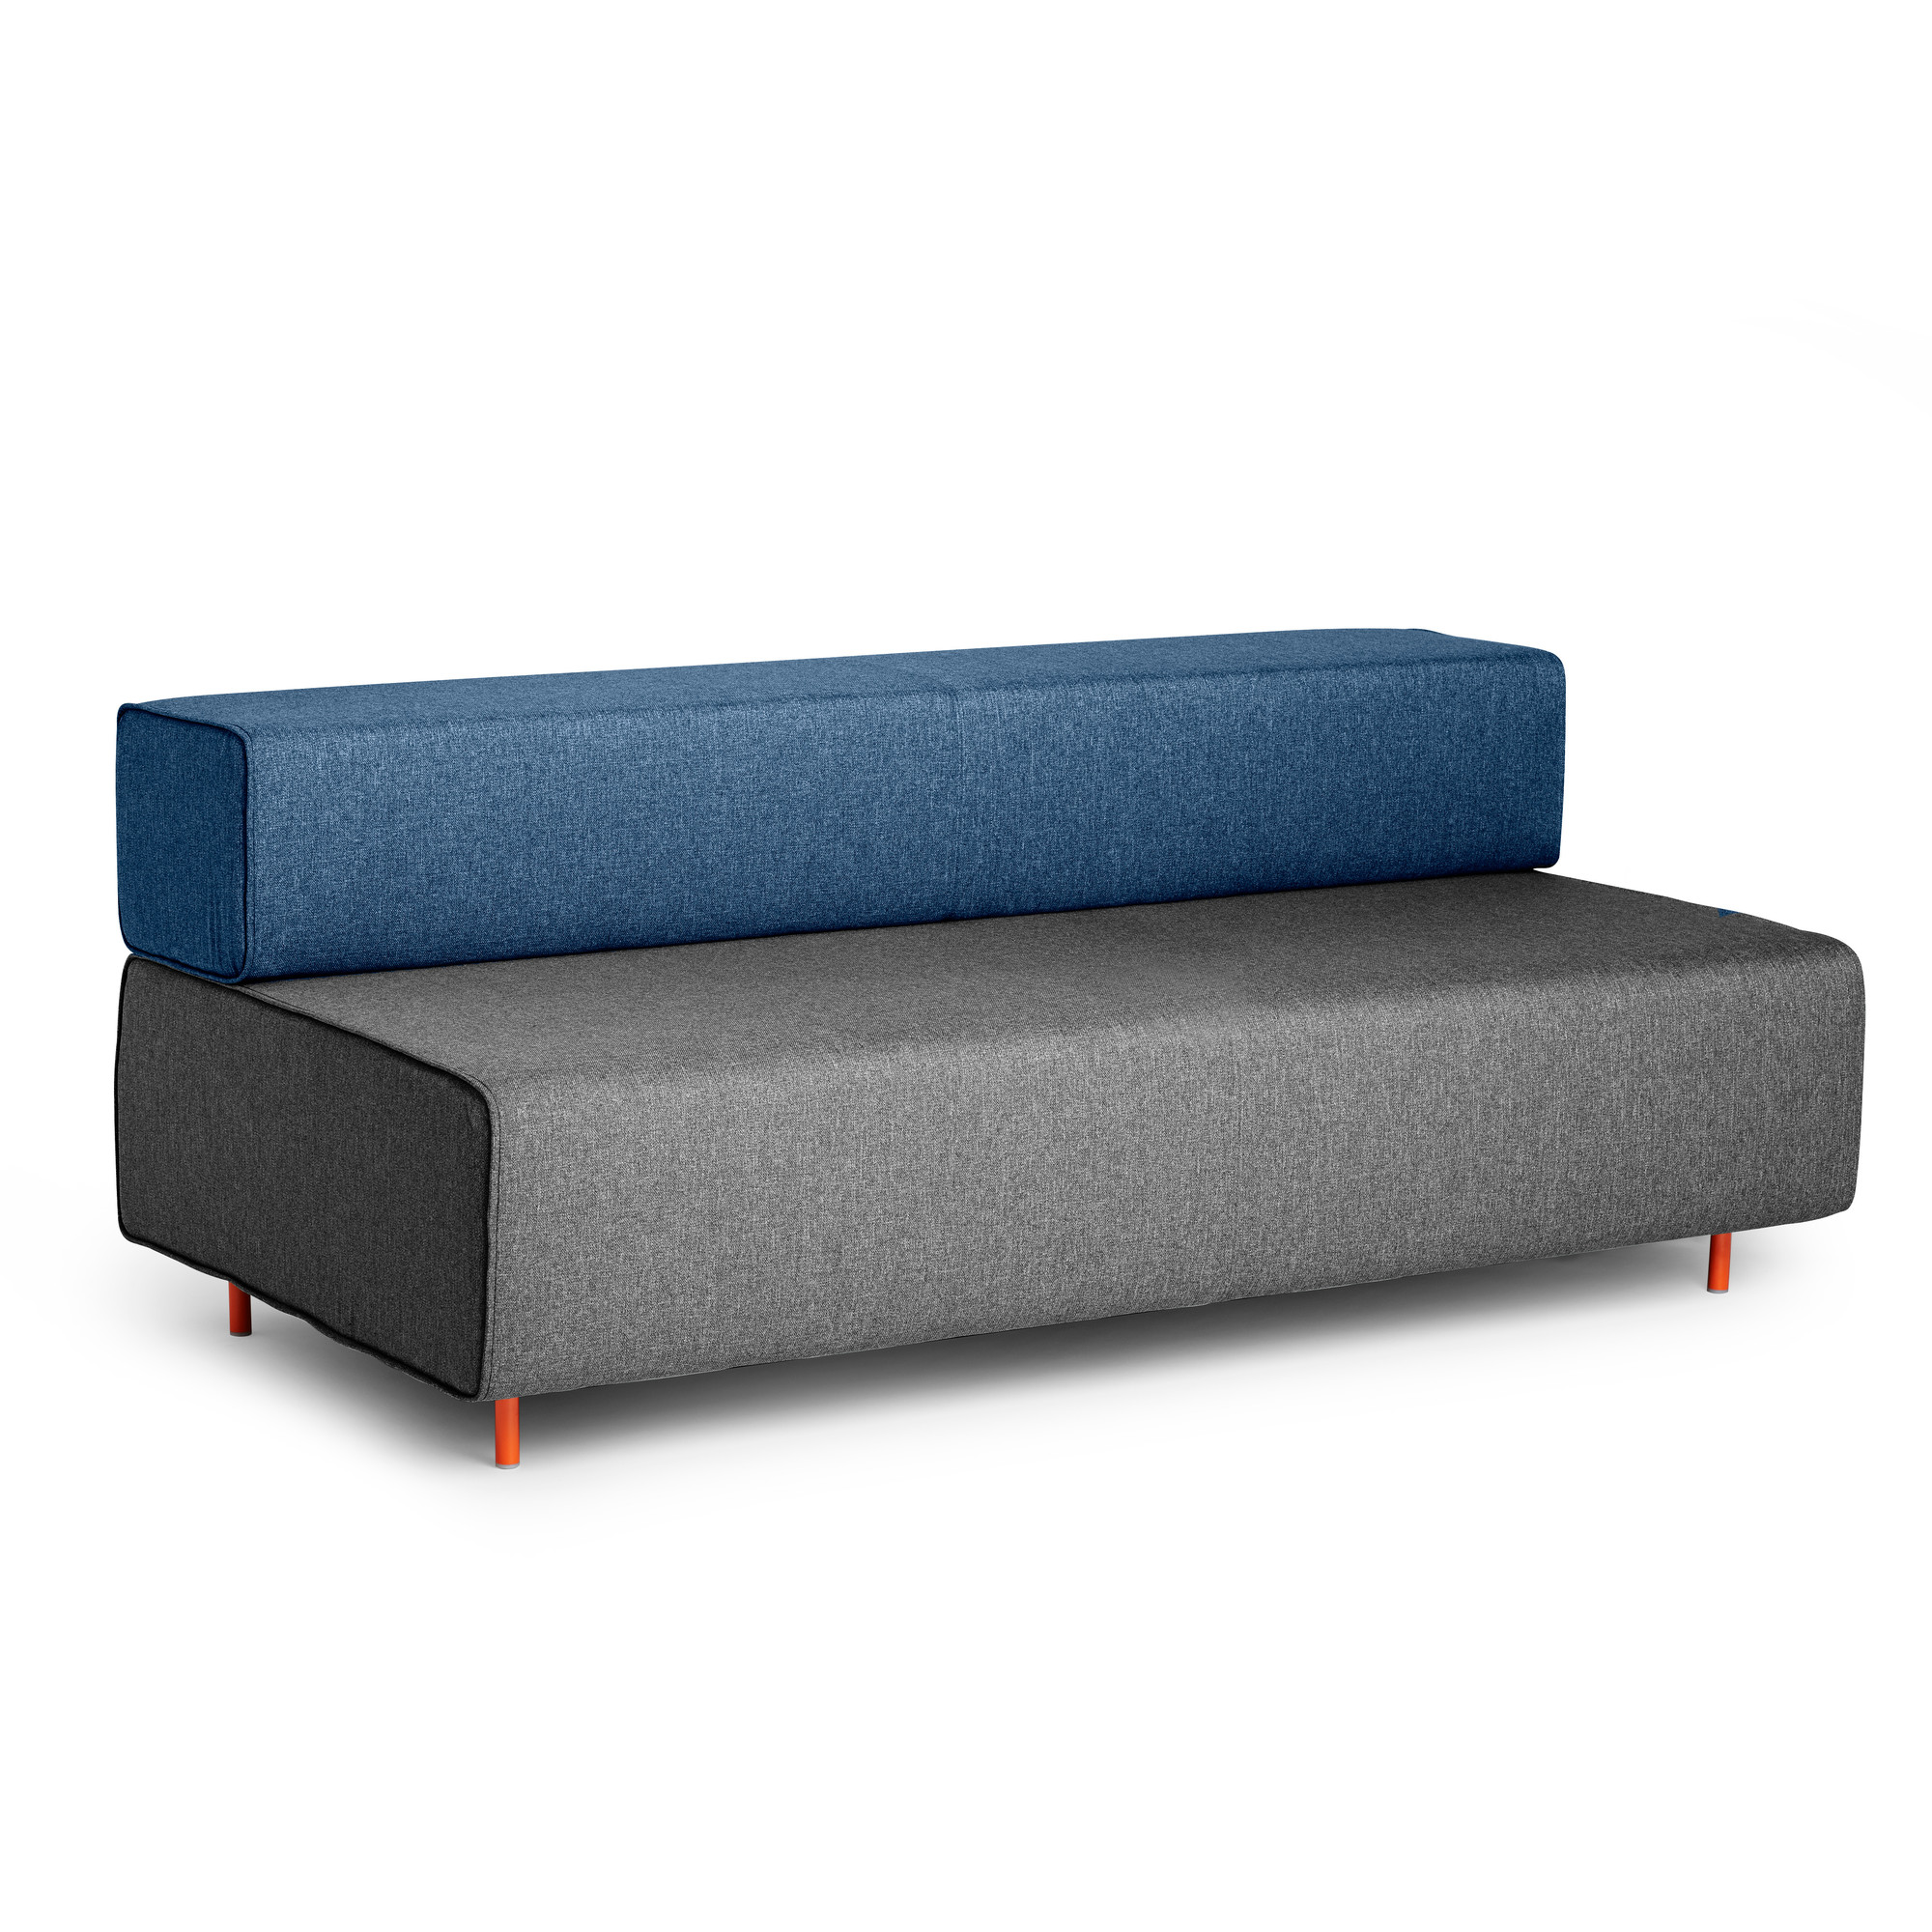 Lounge sofa  Dark Gray + Dark Blue Block Party Lounge Sofa | Lounge Seating ...